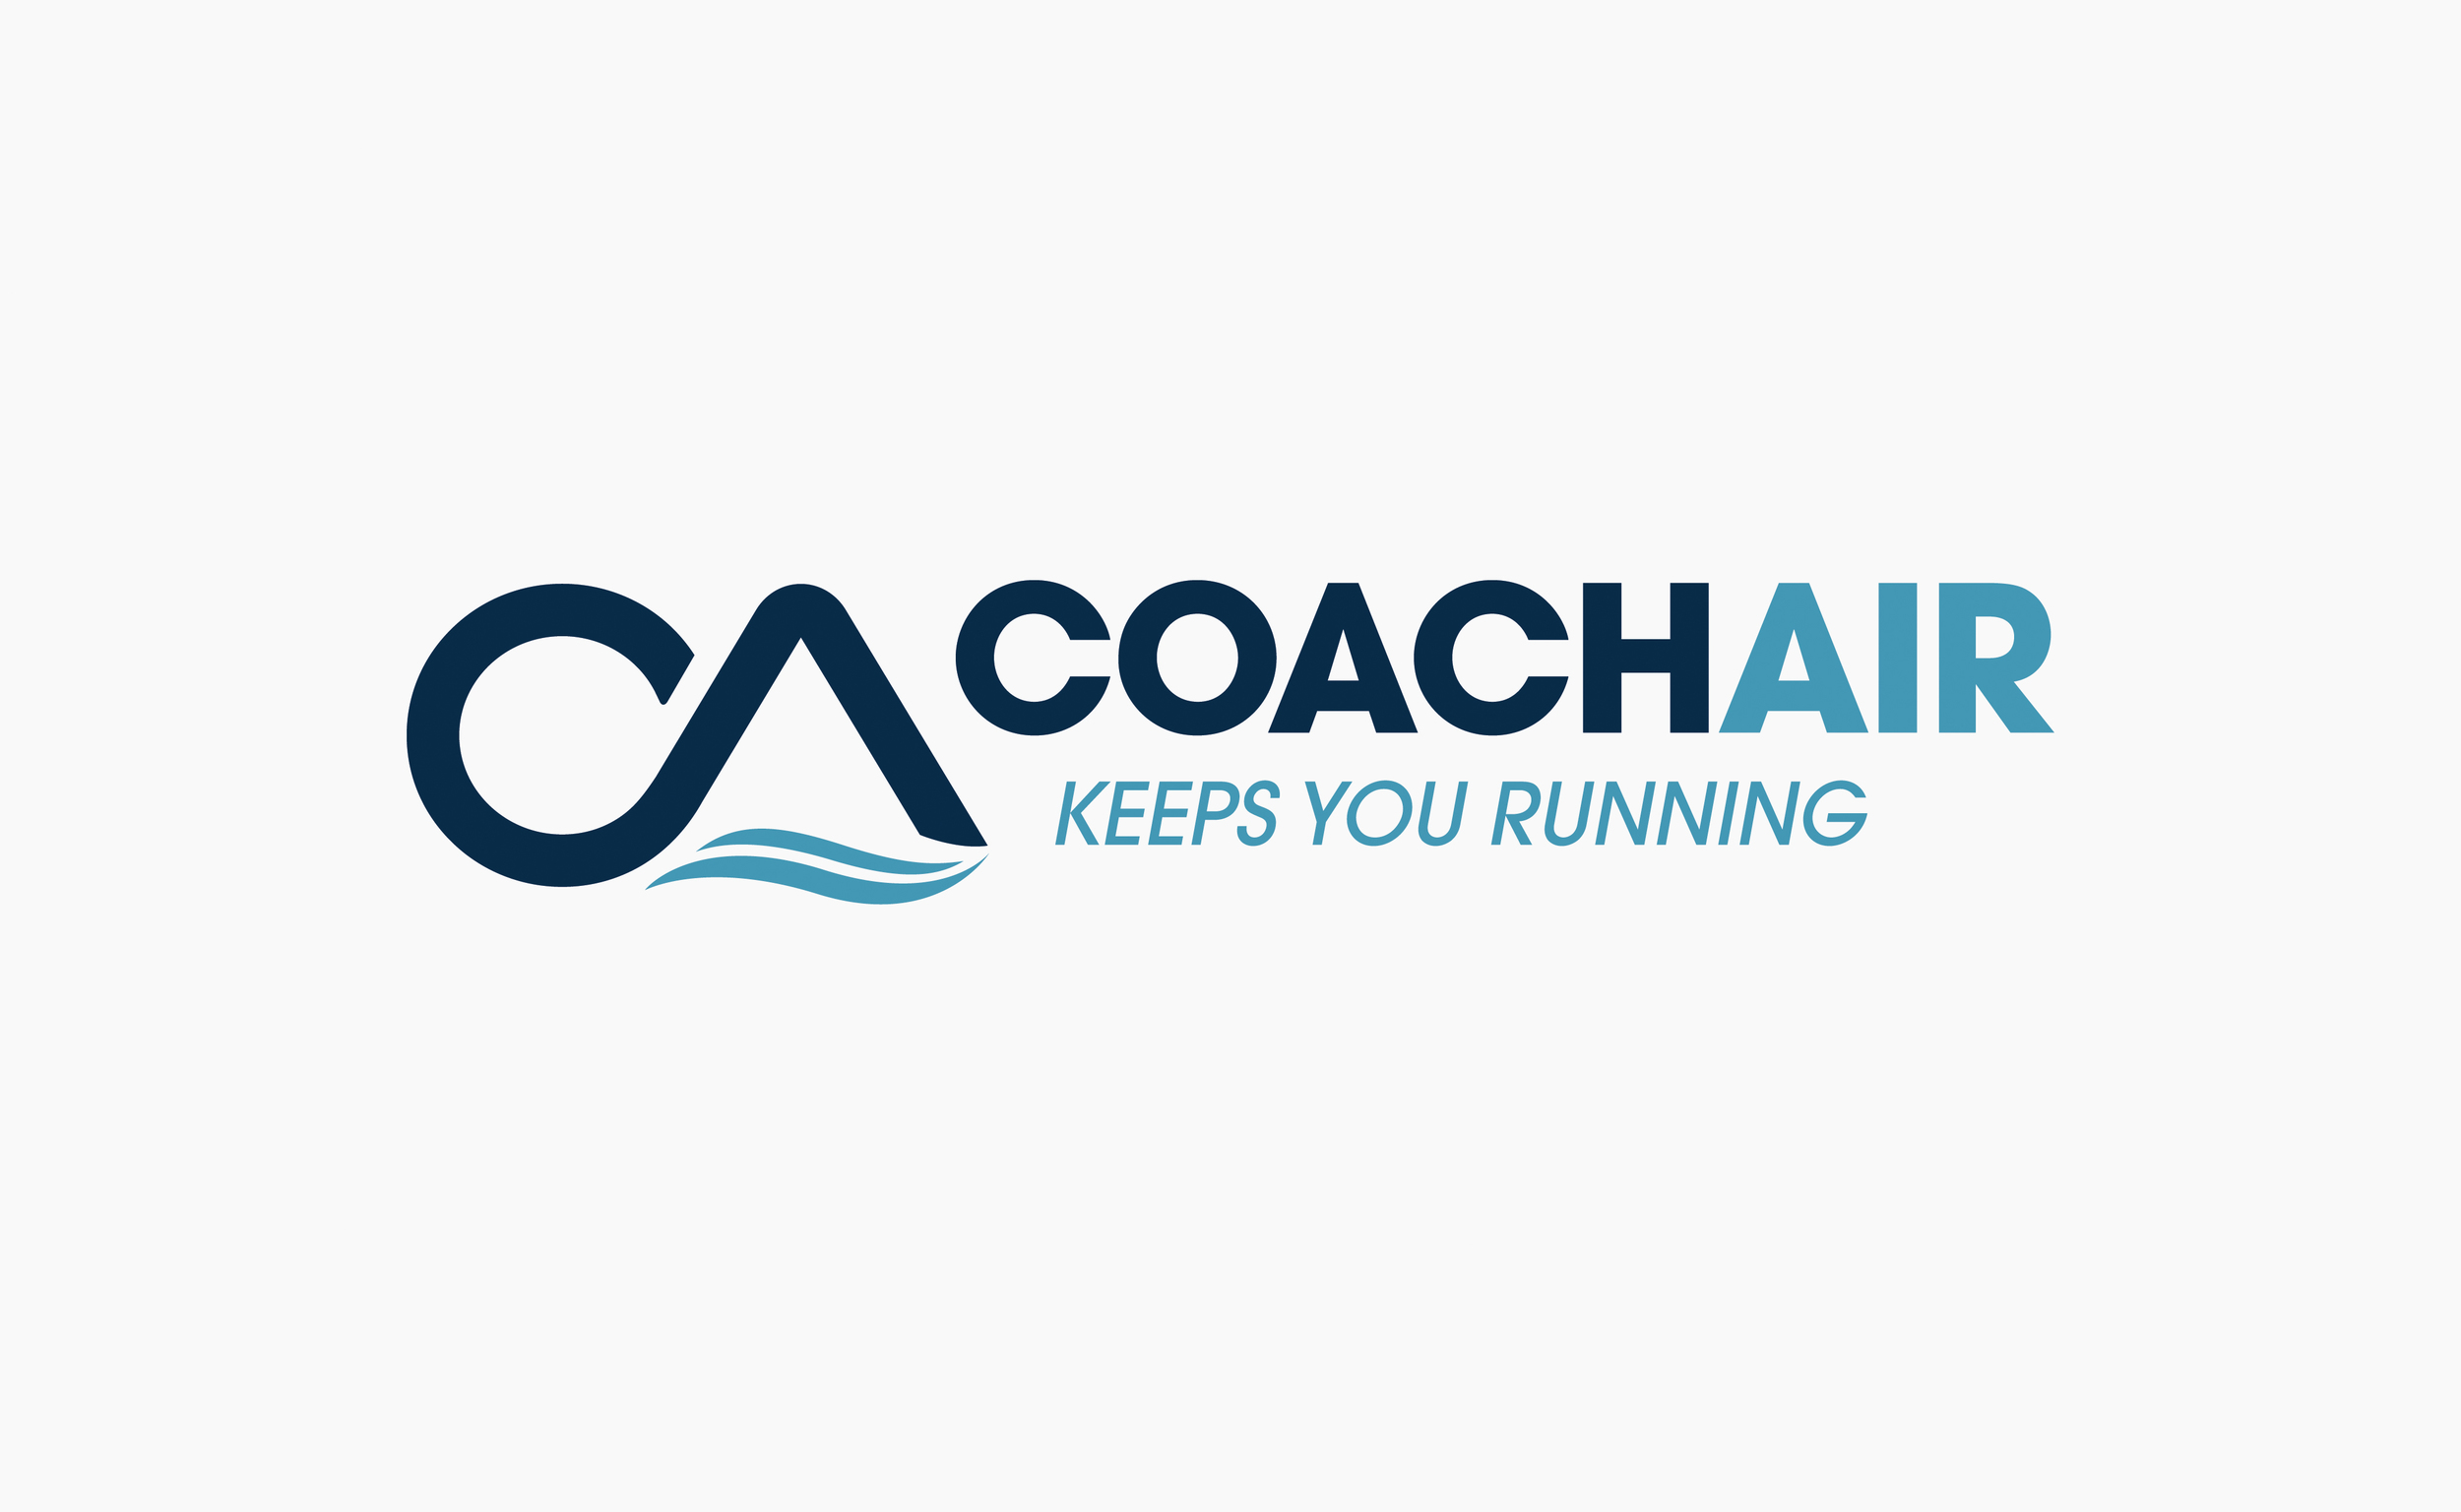 coachair_logo_horizontal_rgb_ƒ.jpg